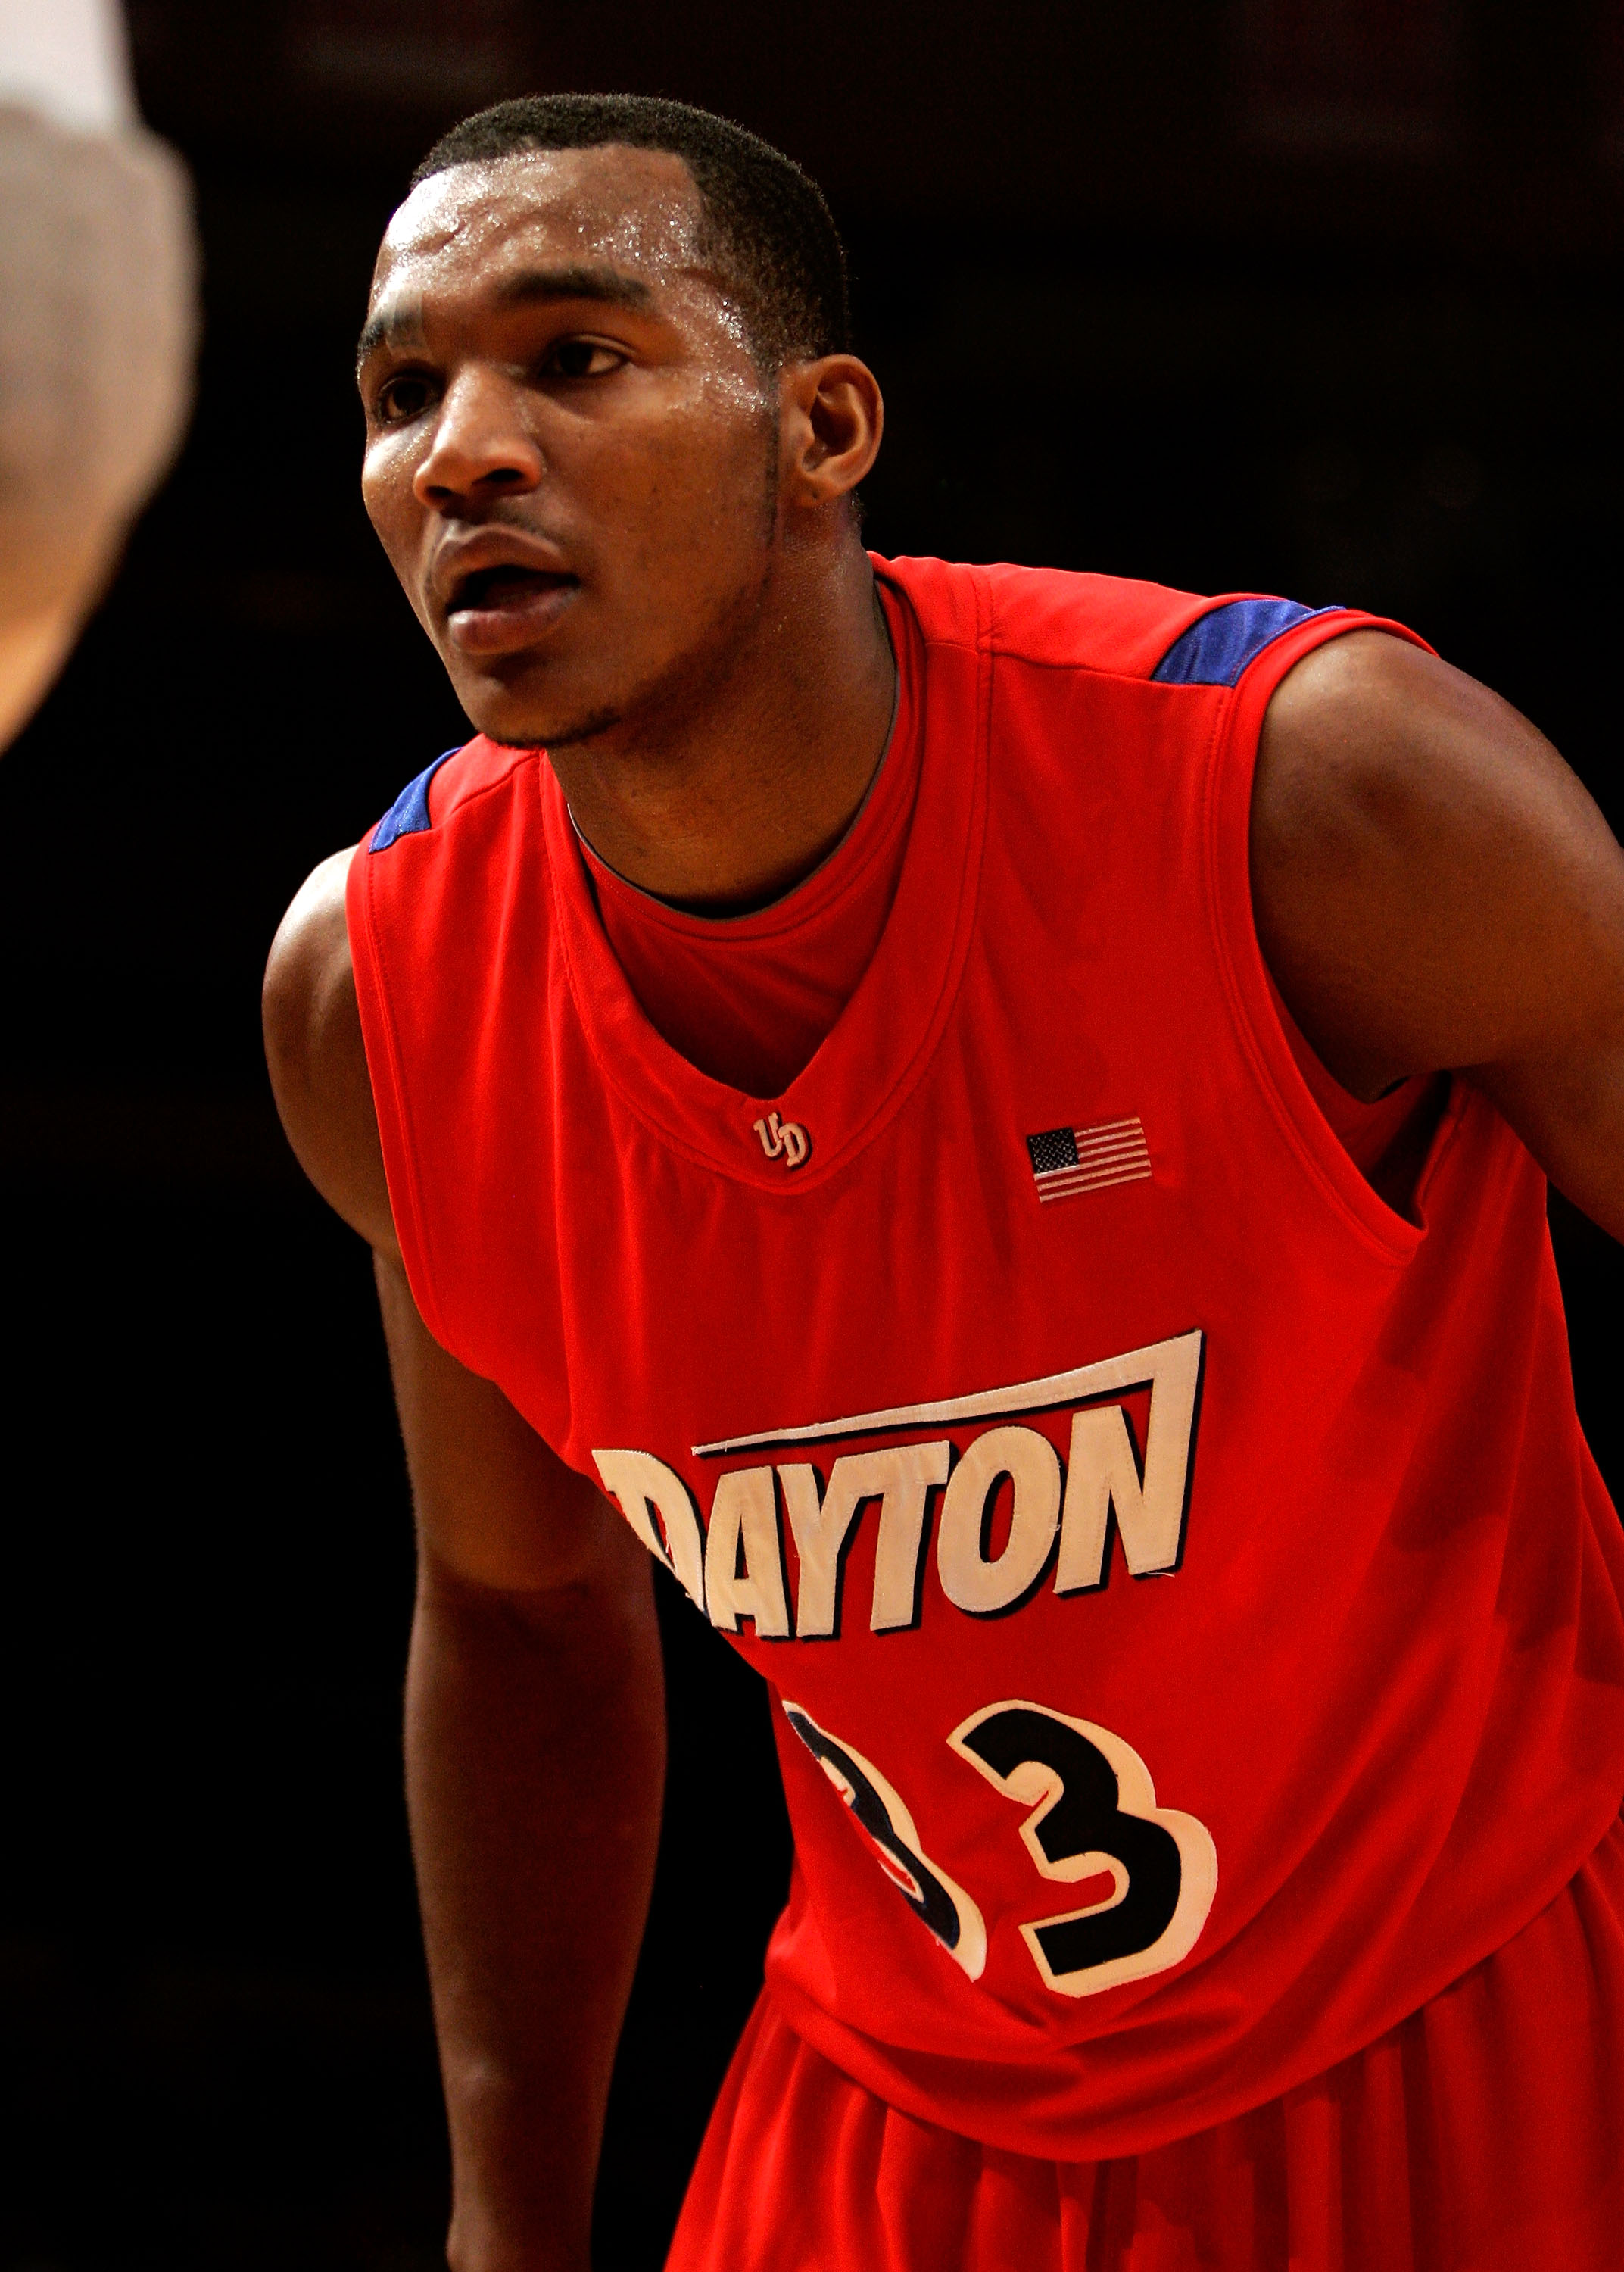 NEW YORK - JANUARY 13: Chris Wright #33 of the Dayton Flyers defends an inbound pass against the Fordham Rams at Madison Square Garden on January 13, 2010 in New York, New York.  (Photo by Mike Lawrie/Getty Images)